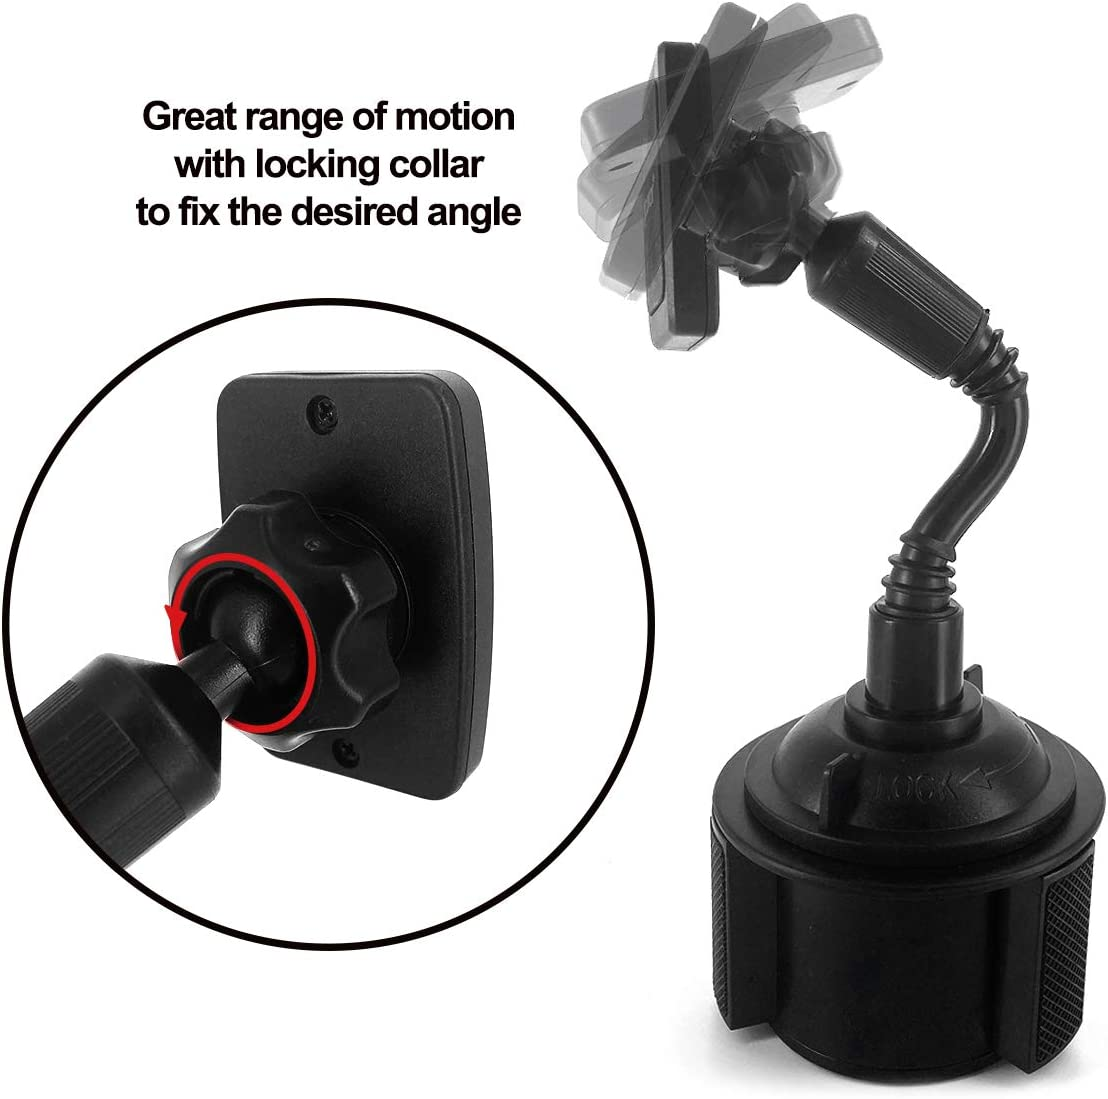 8 S20 and Many More Smartphones Xr 11 SE 2 Samsung Note 10 Acuvar Magnetic Cup Holder Flexible Car Mount with 2 Adhesive Steel Plates for iPhone 11 Pro Max S10+ 8+ 11 Pro 7 7 Plus Xs Max